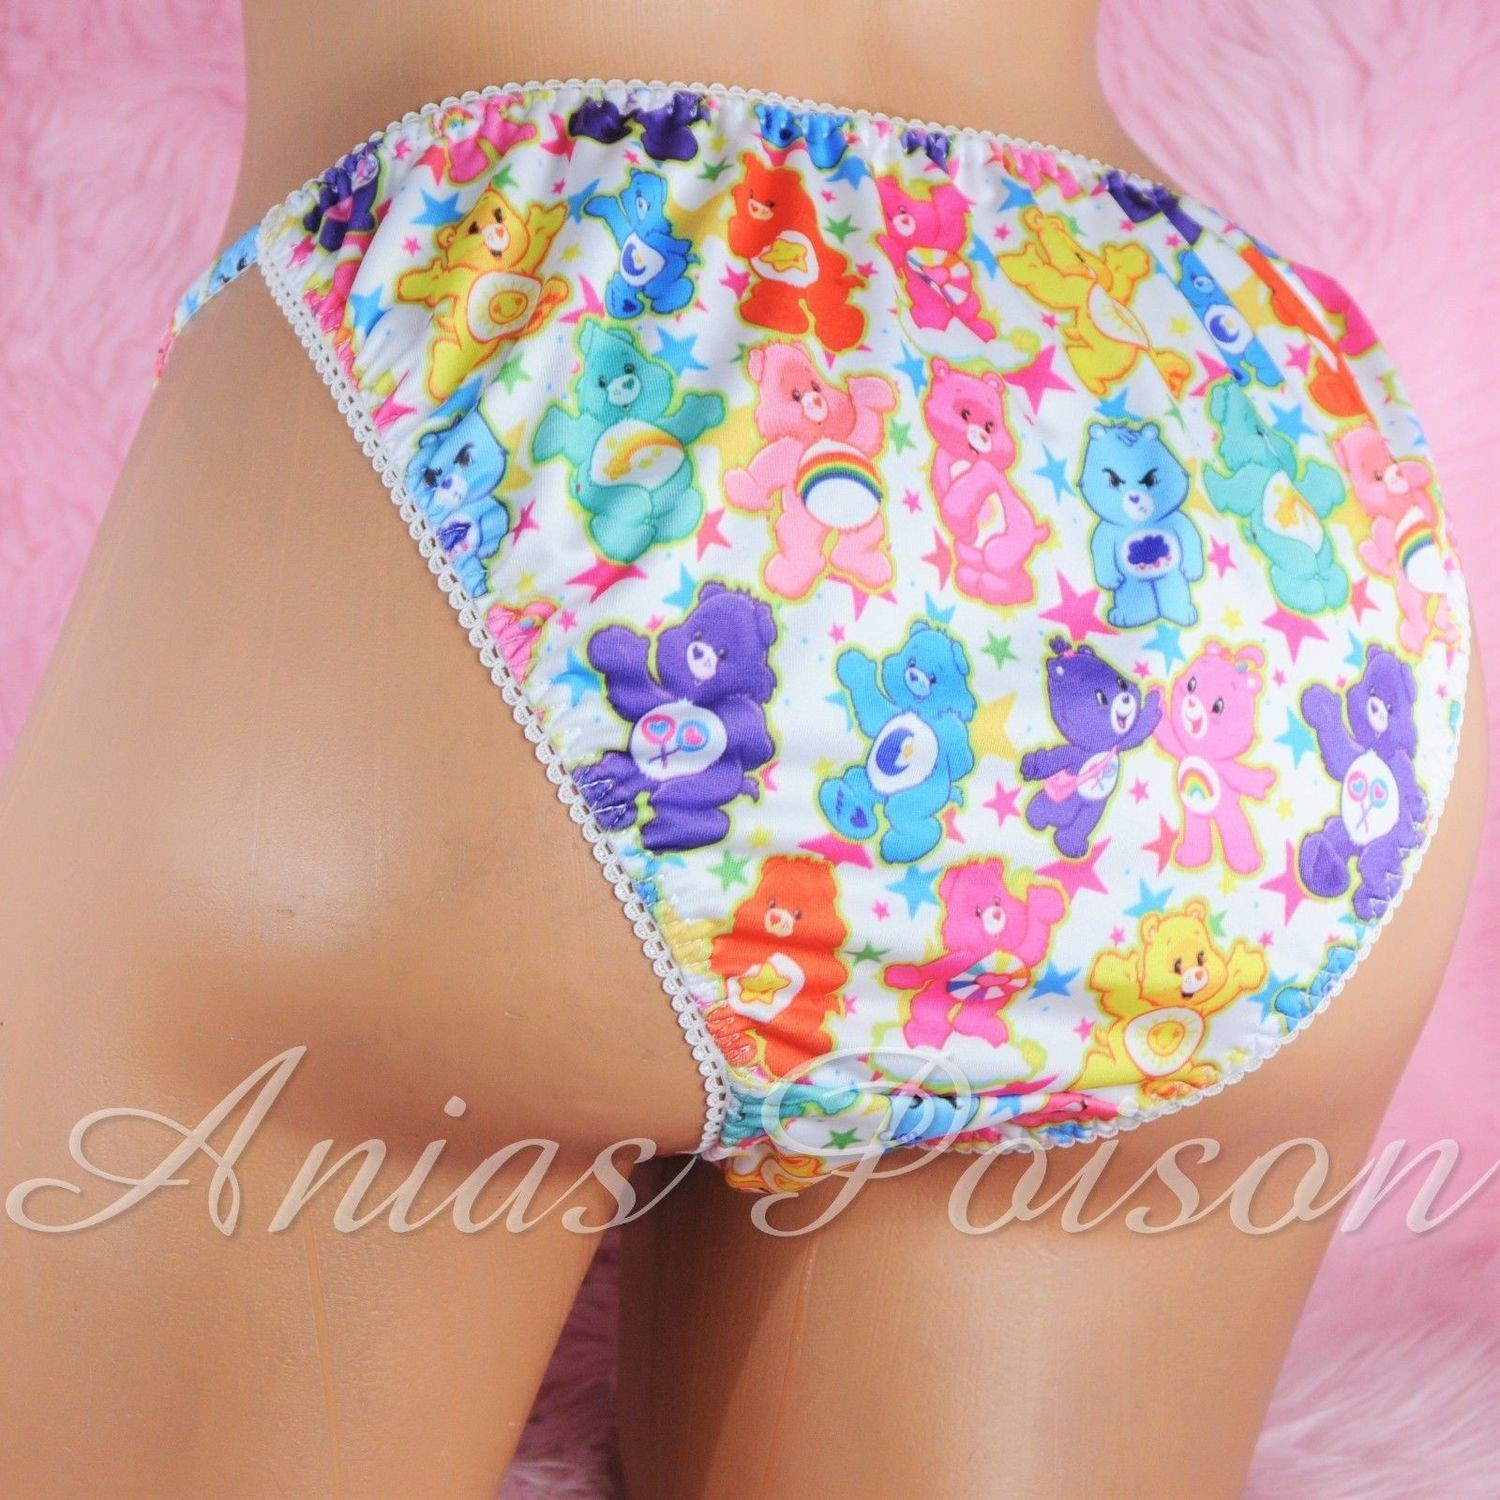 Rare Novelty Character print Spandex Stretch string bikini Care Bear Rainbow Princess Panties